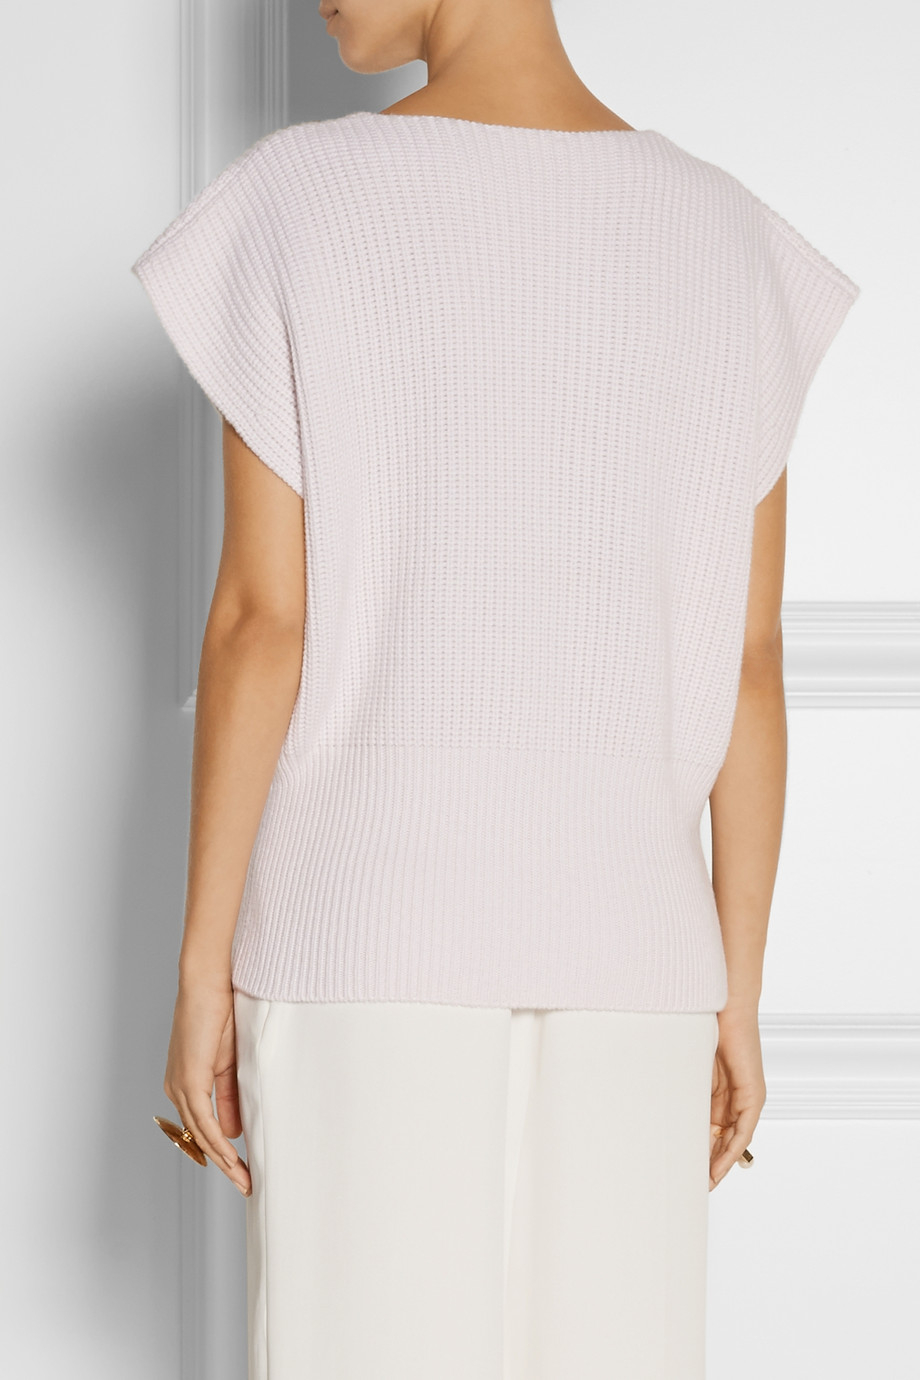 Official Site Buy Online Cheap Ribbed Cashmere Sweater - Peach Chloé Cheap Discounts Discount Outlet Store Outlet With Paypal Order Online ZRuqP